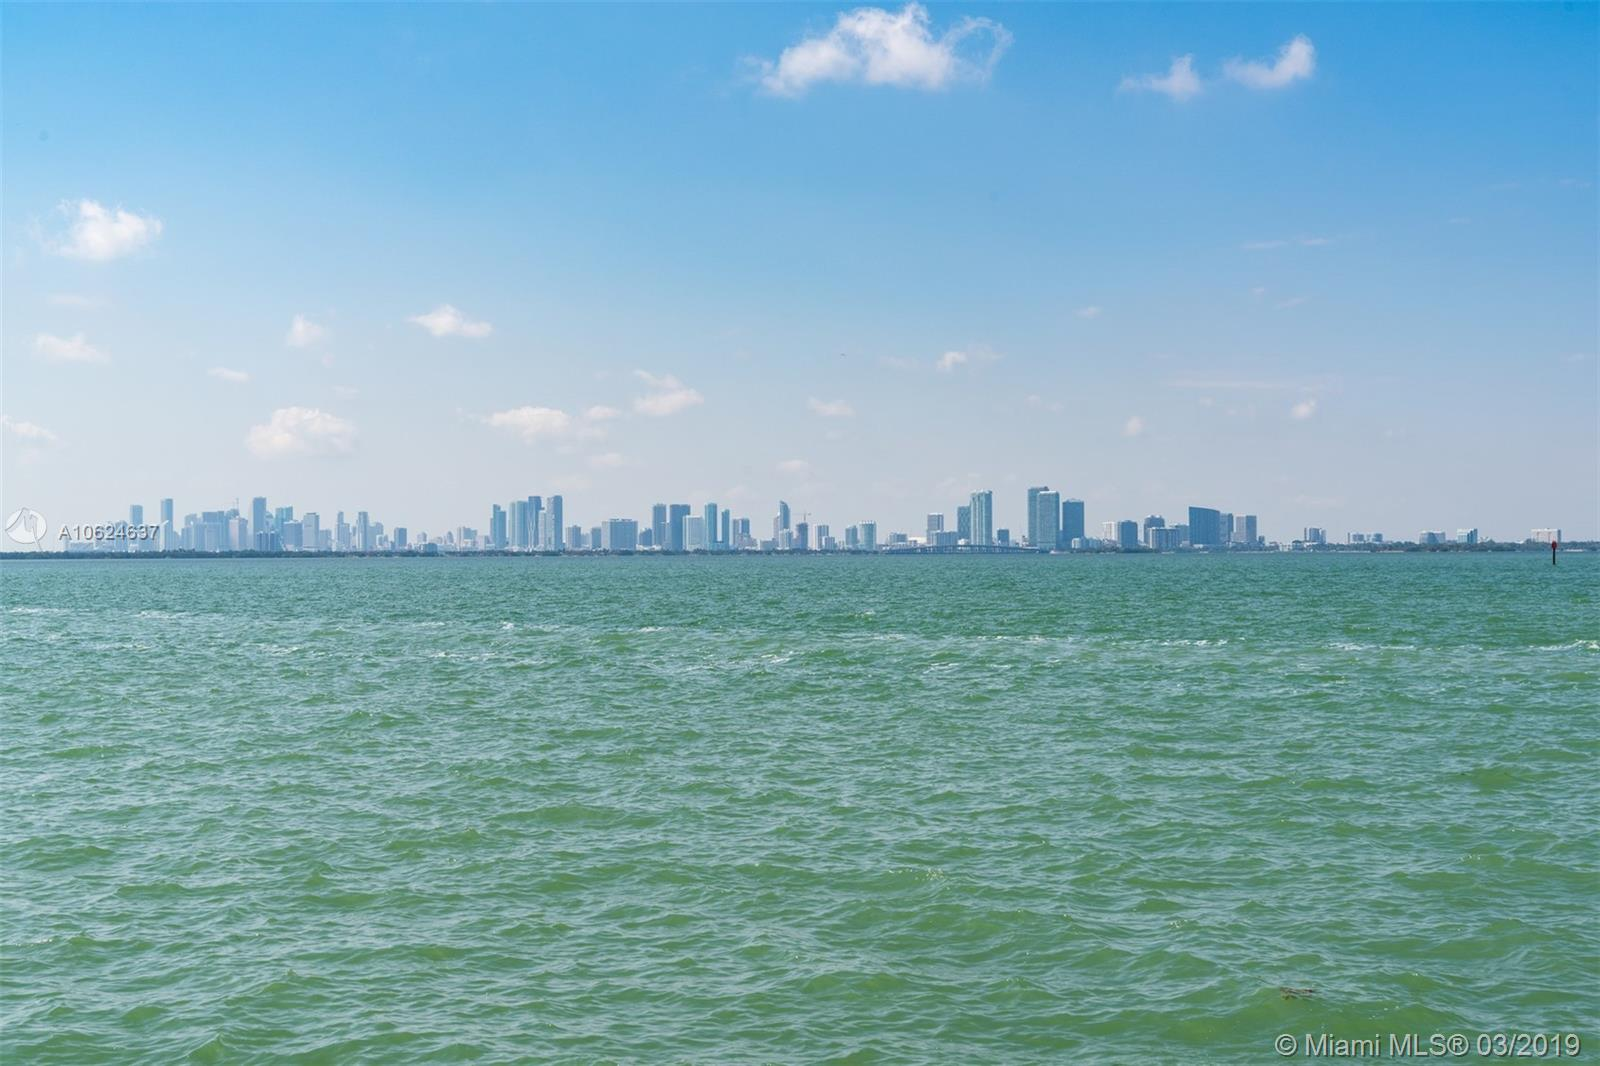 30, 000 +\- Sf Lot With 150 Ft Of Waterfront On North Bay Road With Downtown Views. Perfect To Build Your Dream Home Or Invest For The Future. Plans For A Beautiful Modern Home Have Been Submitted To The City Awaiting Approval. See Renderings.